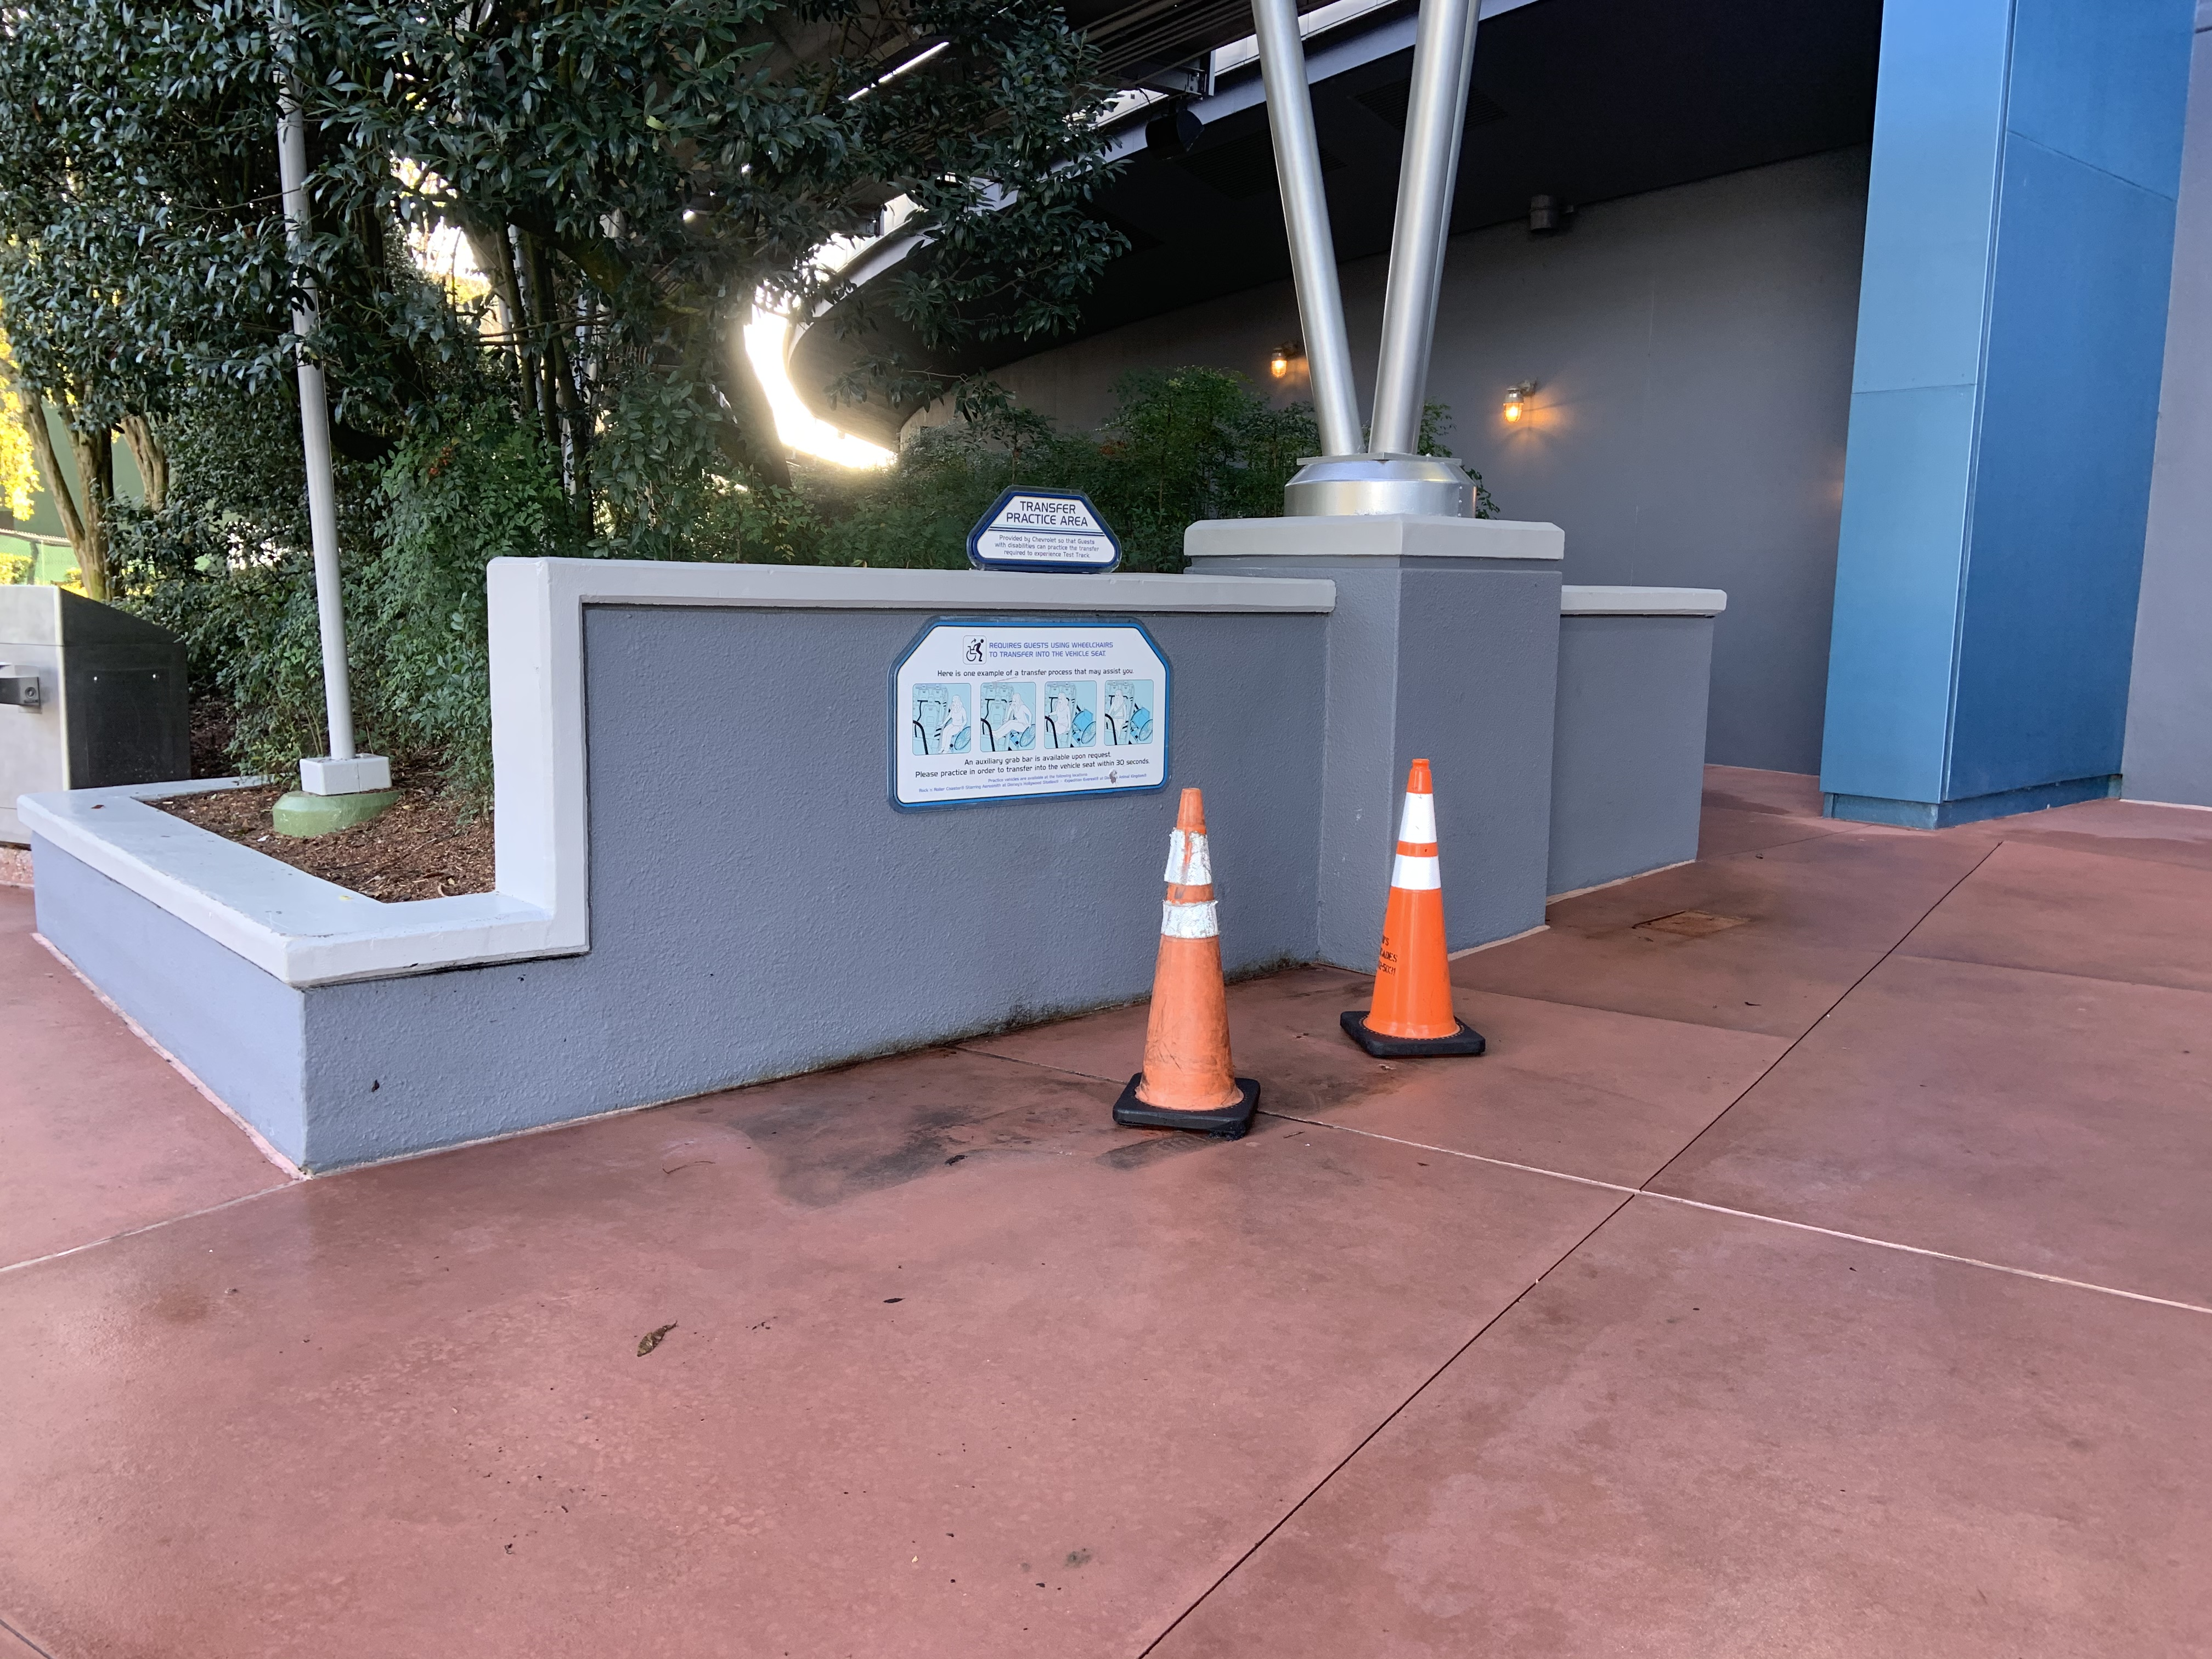 Test Track closed 1/13/20 3